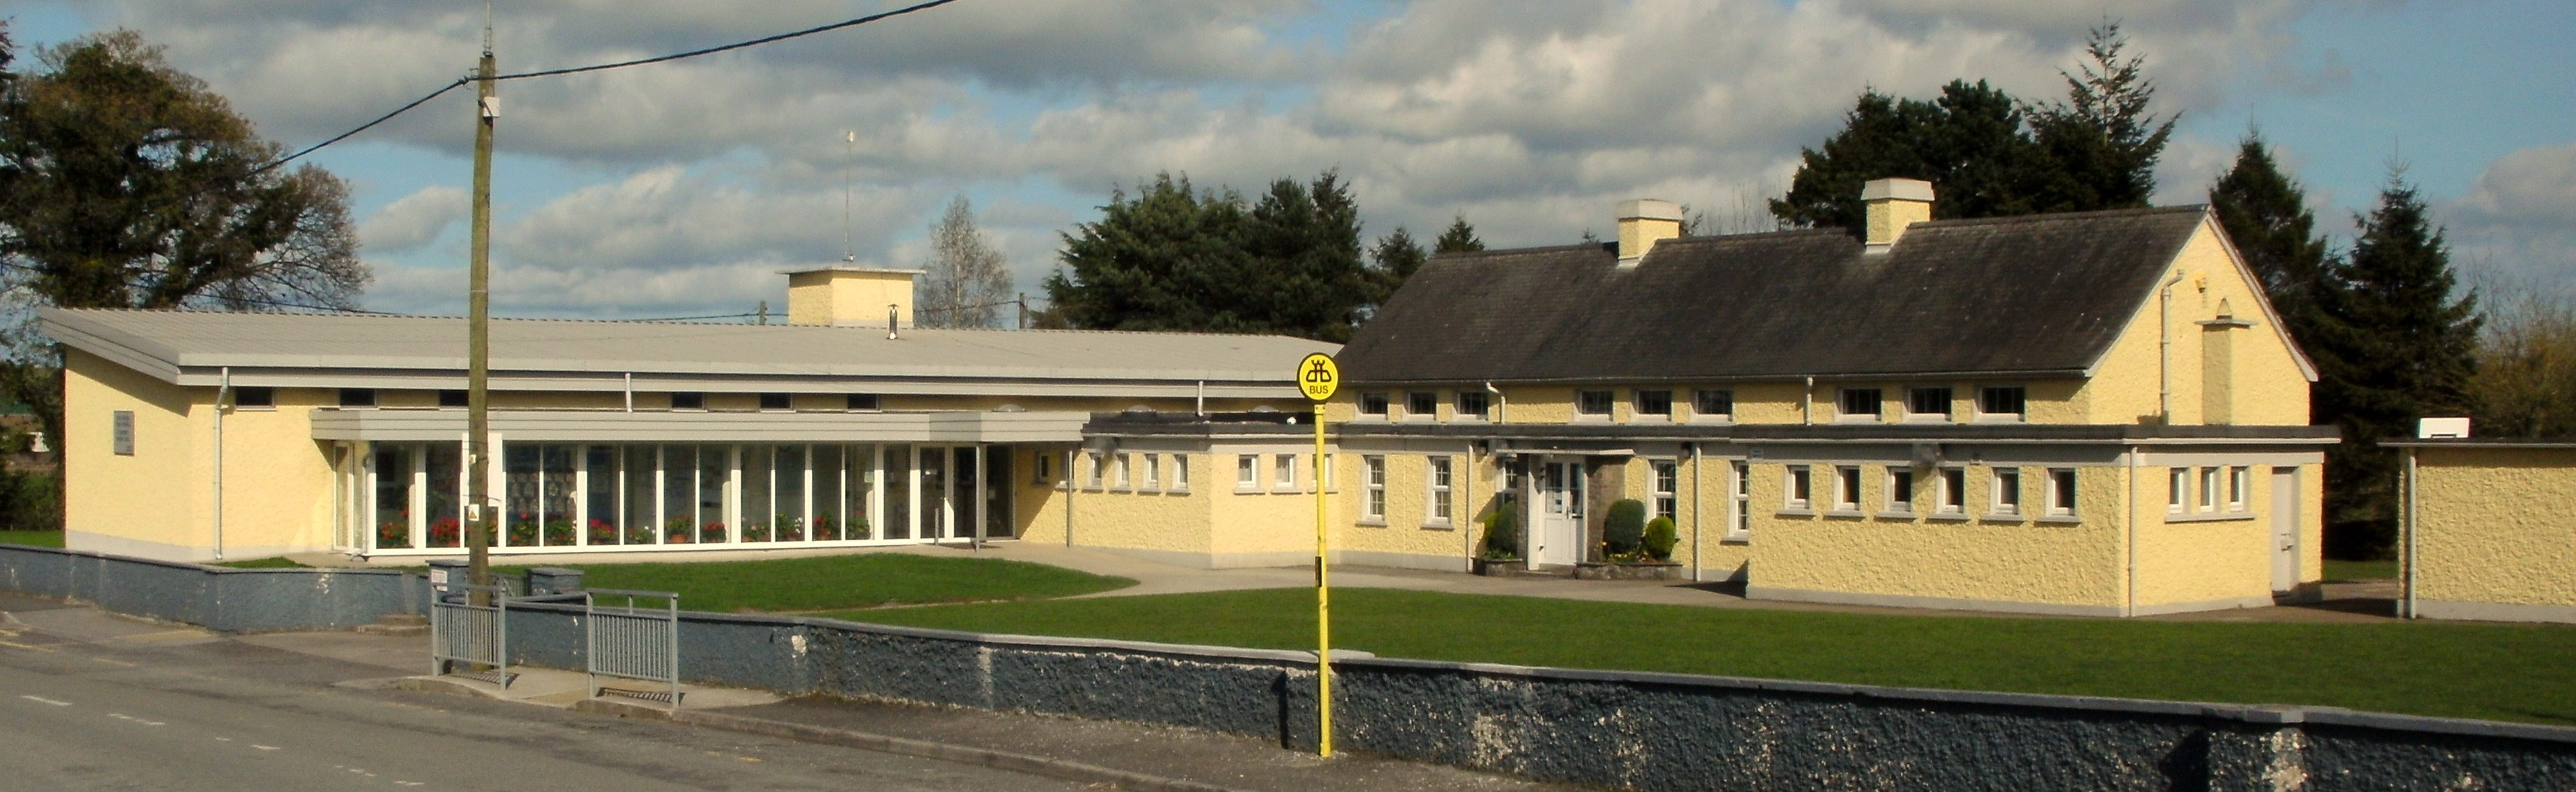 St. Margaret's National School